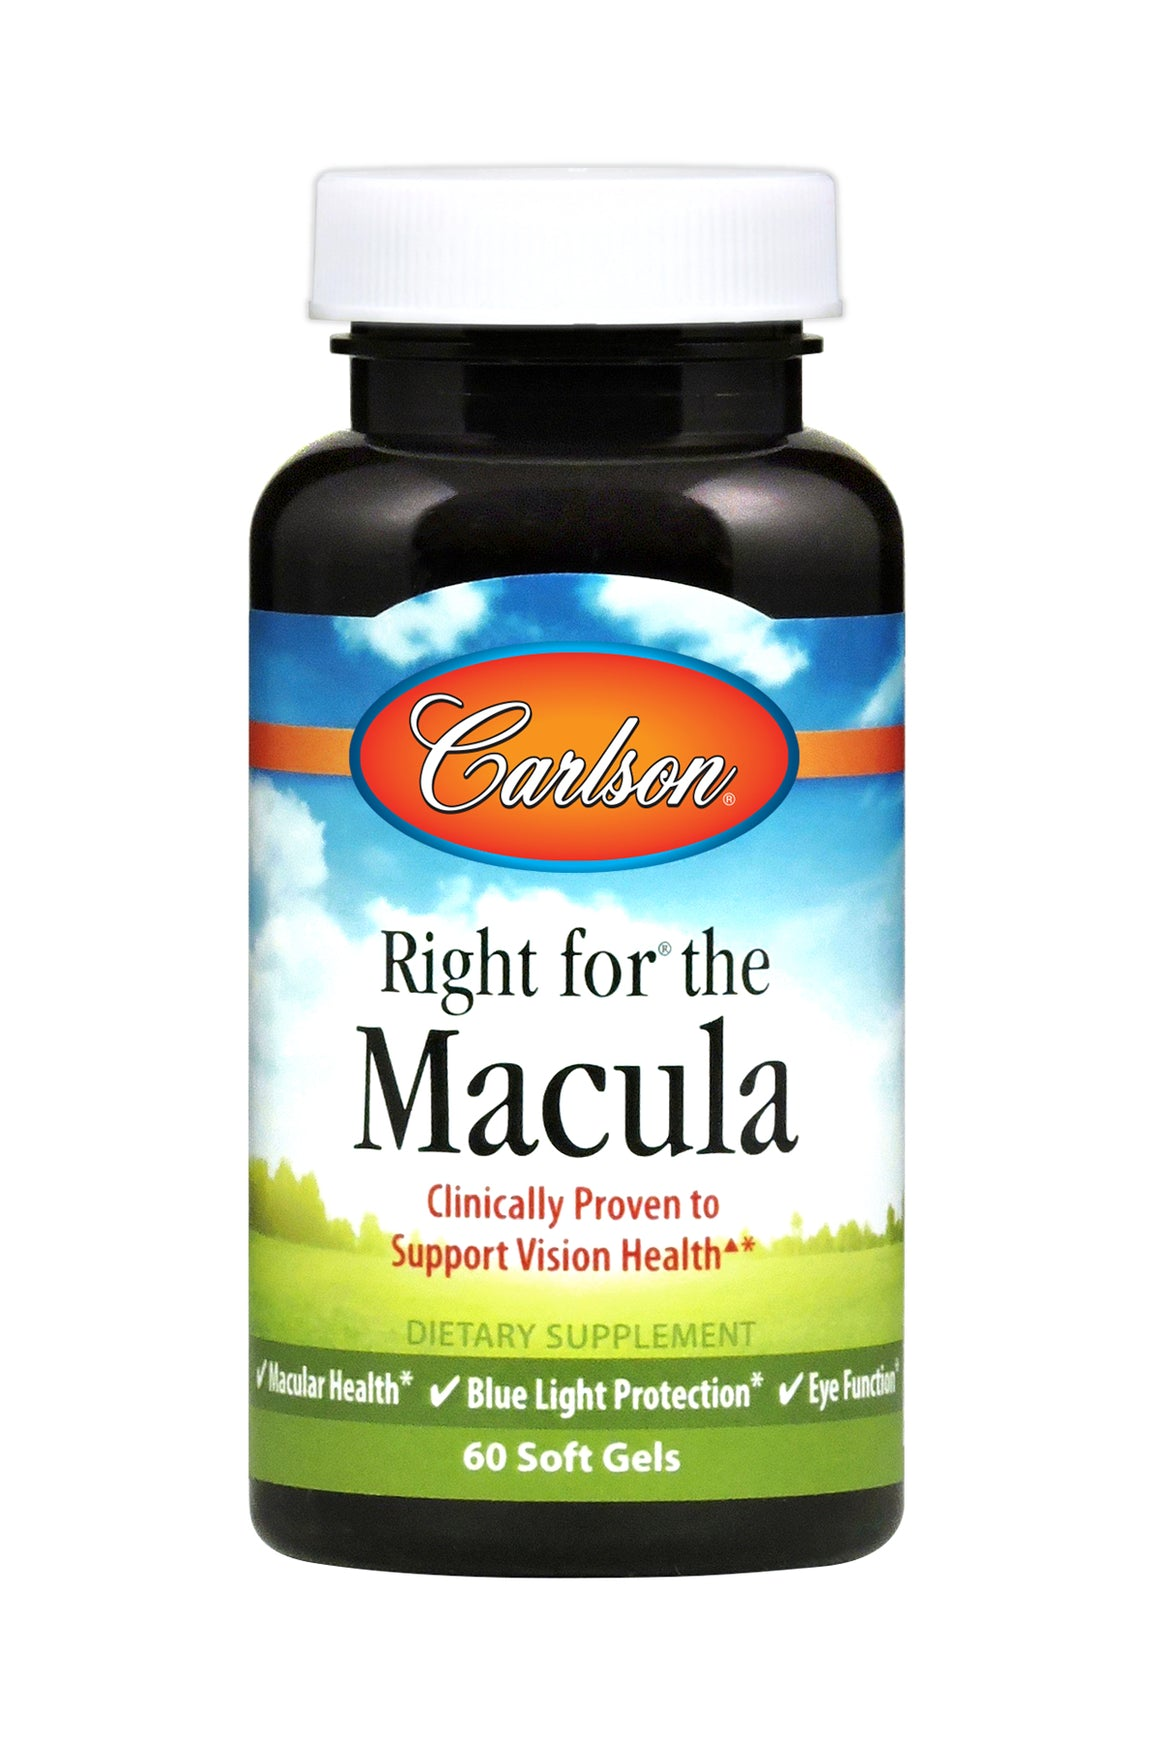 A bottle of Carlson Right for the Macula